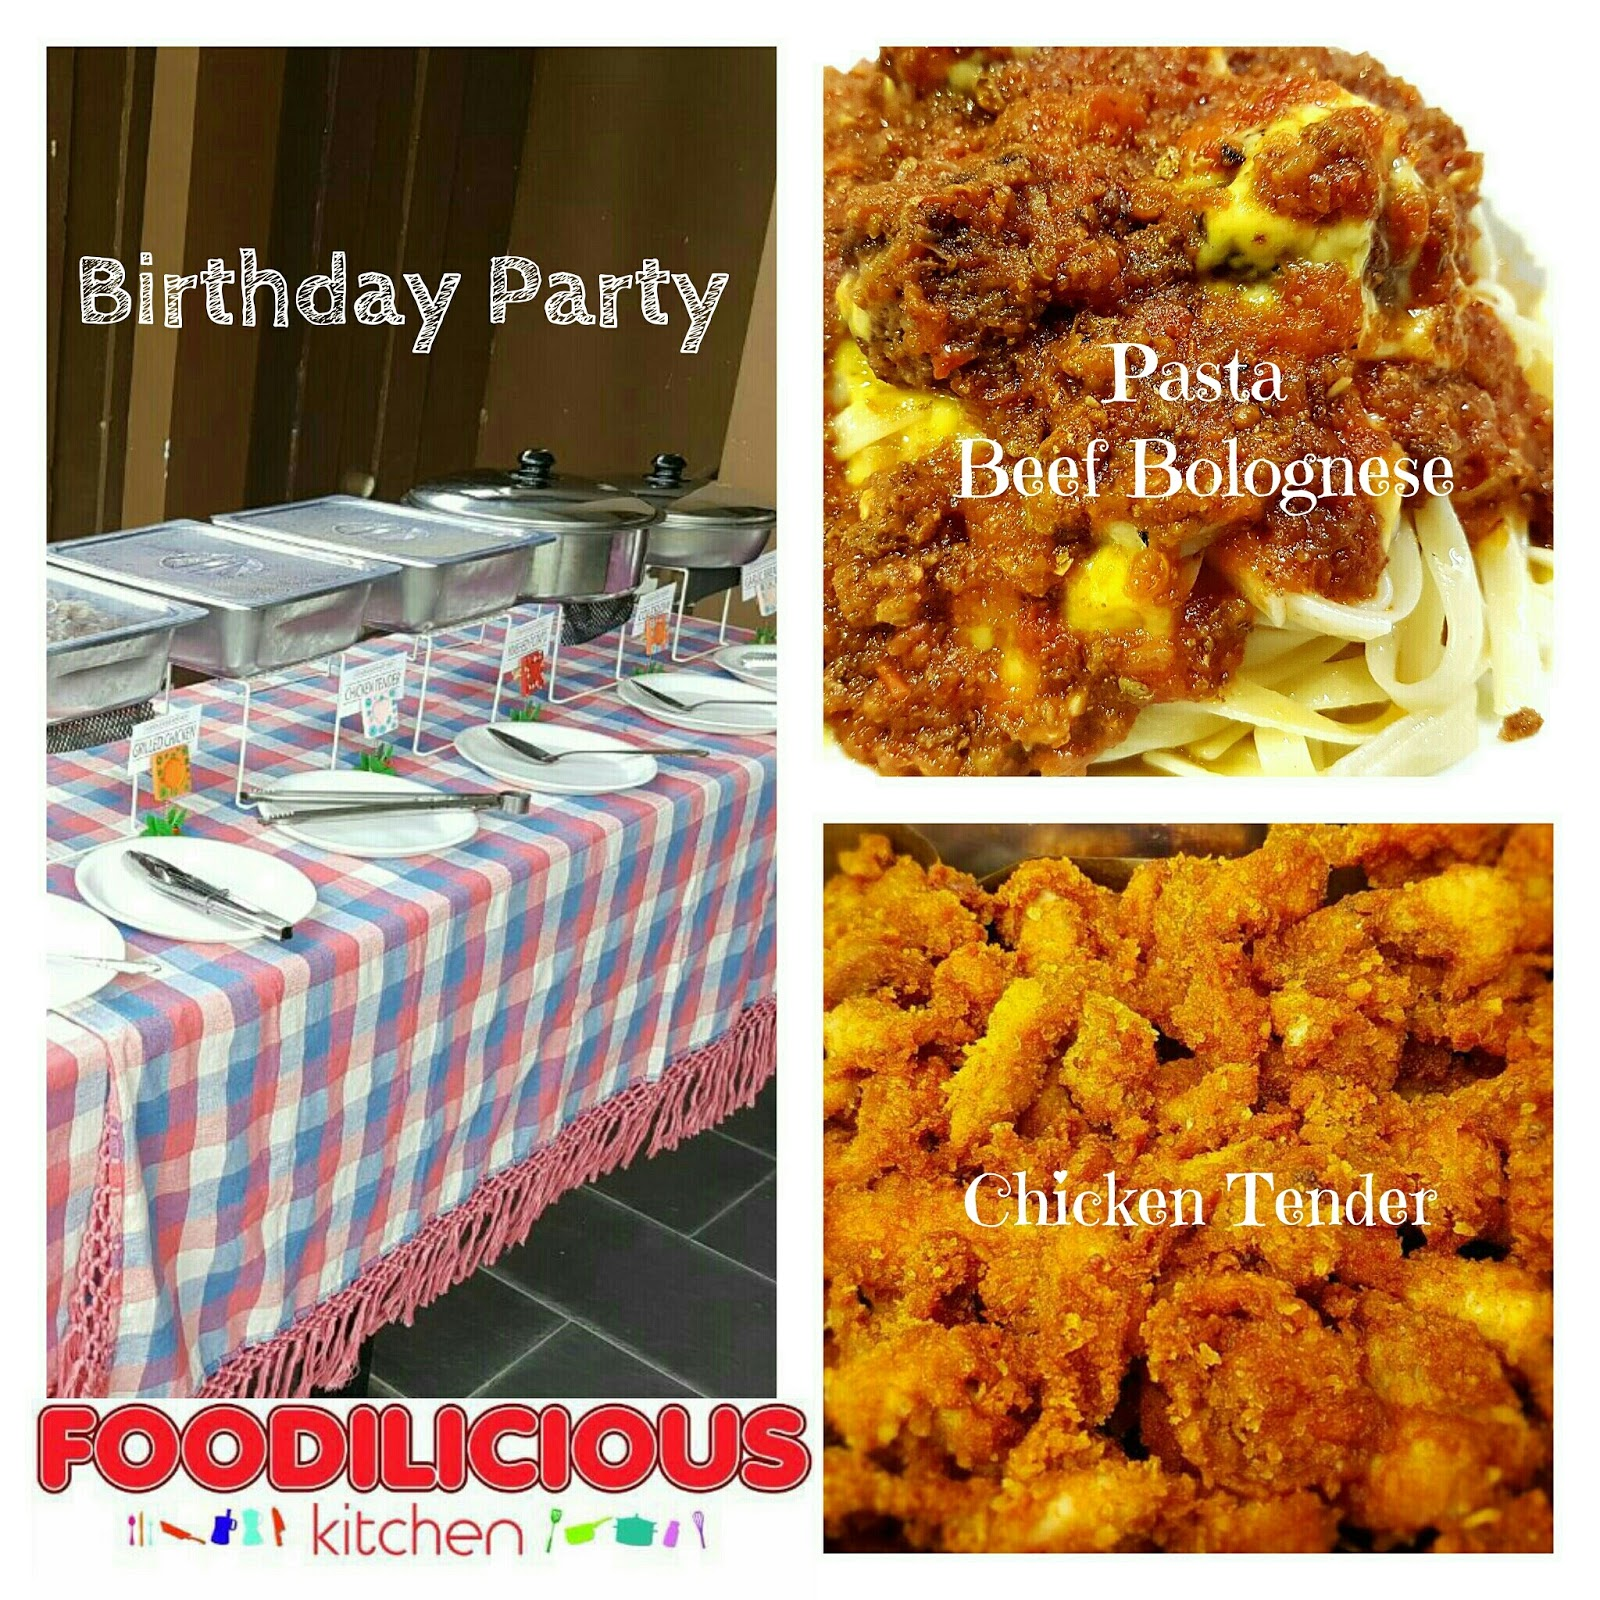 FOODILICIOUS KITCHEN SHAH ALAM: THROWBACK CATERING SERVICE